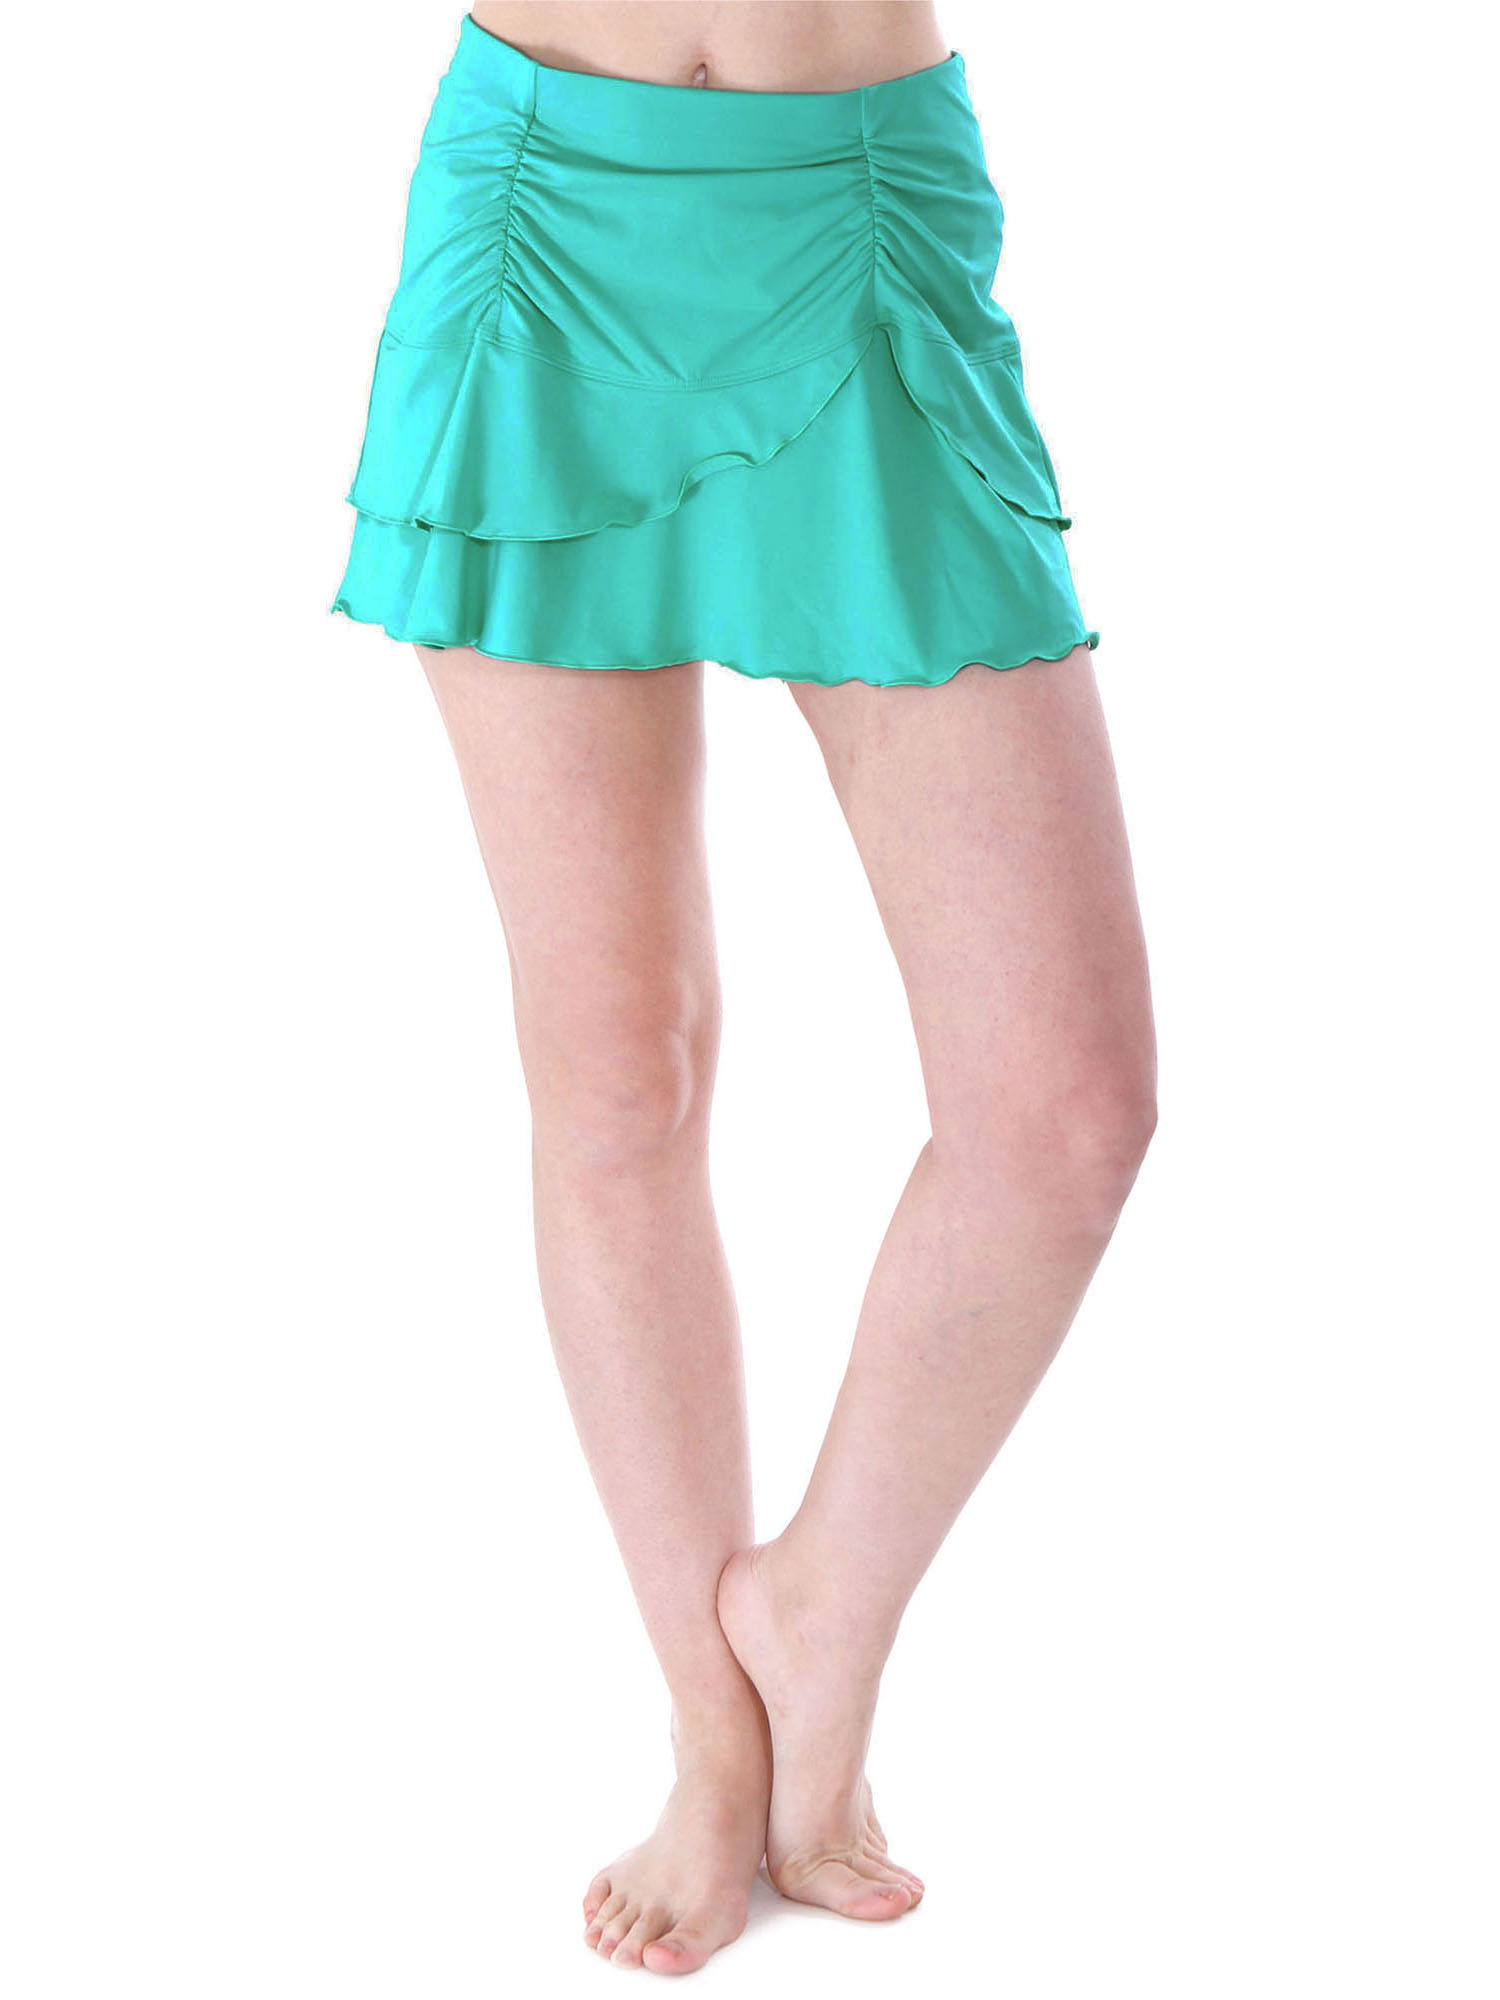 Women's Summer Solid Colored Cover Up Skirt Swim Skirt, Catalina Green, XL